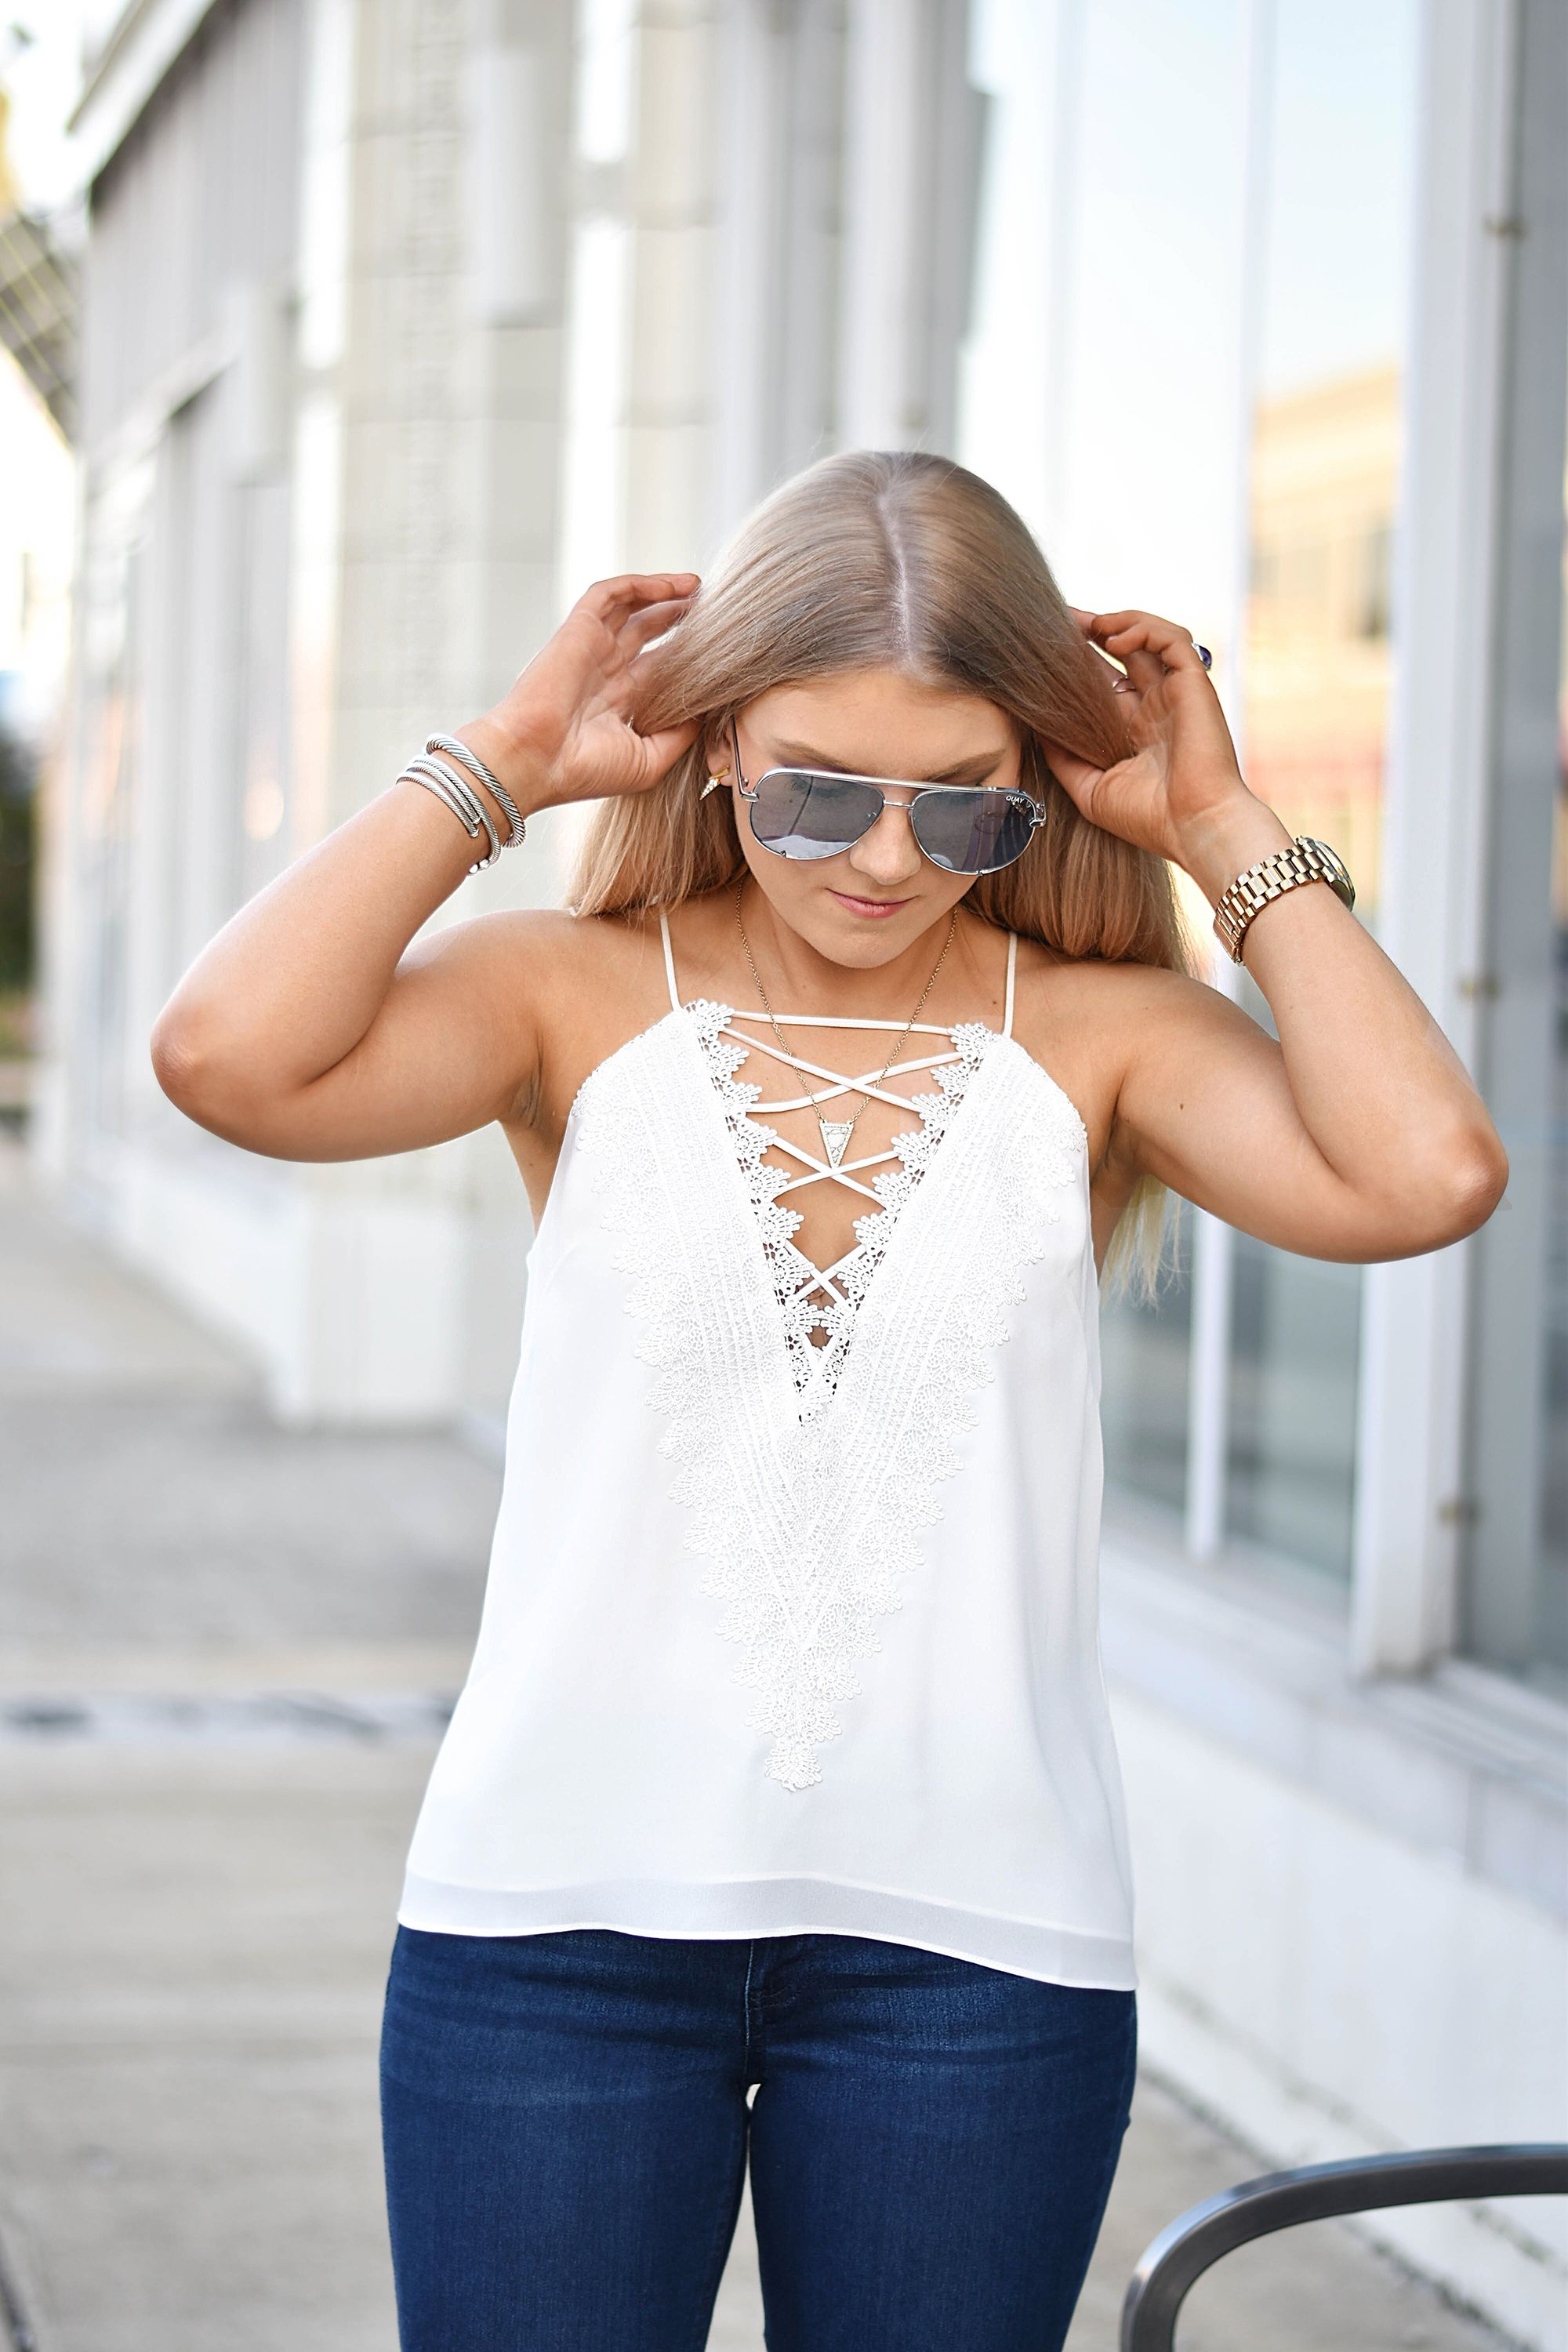 58d6adafab8 WHITE LACE CAMI | Summer Style | White lace cami, Camisole outfit ...